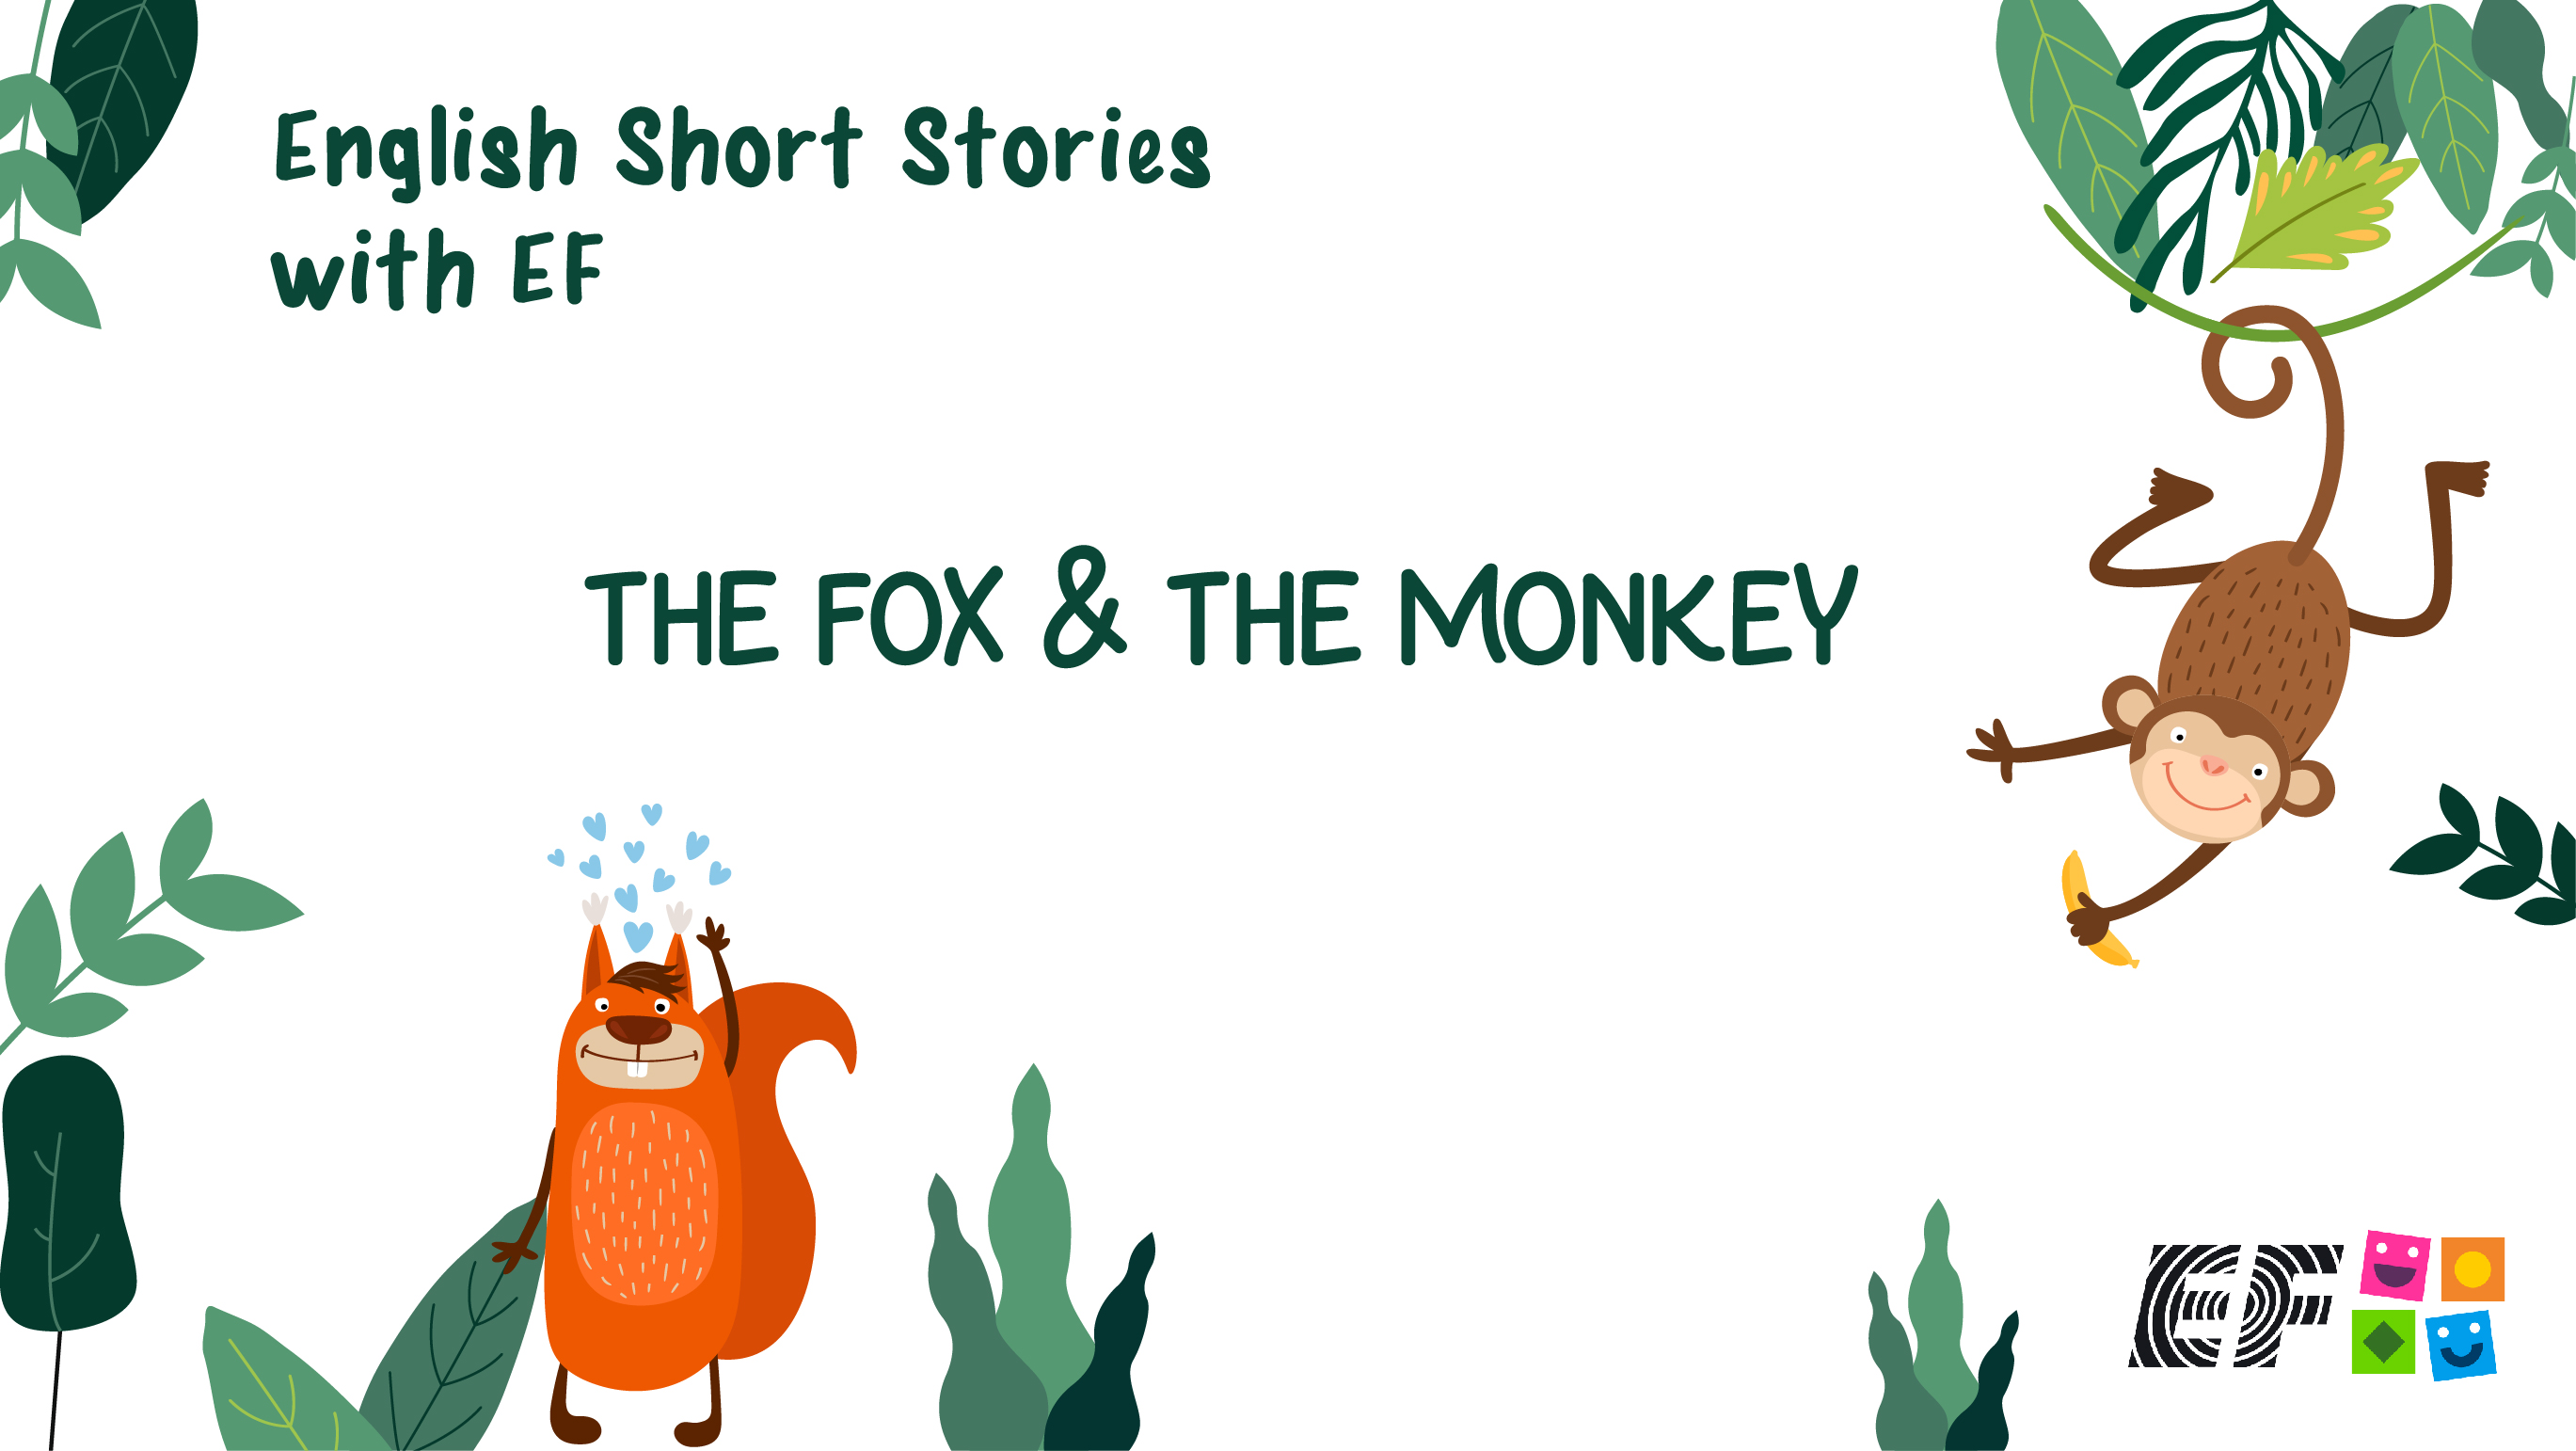 English Short Stories - The Fox And The Monkey